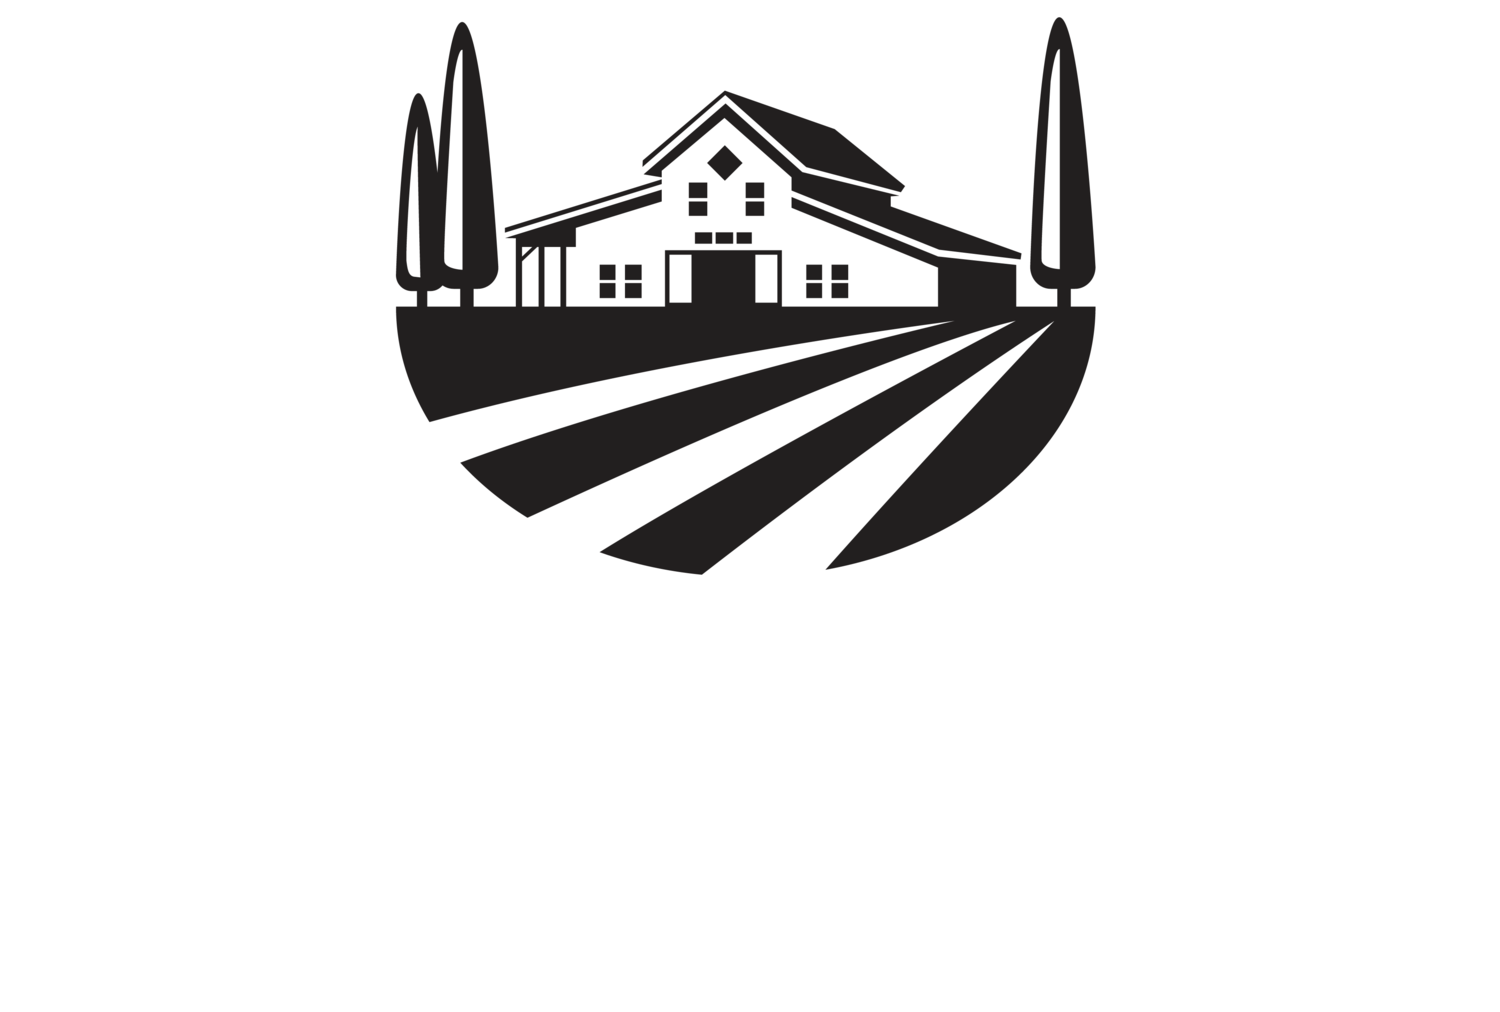 The vineyards at mt. Farm clipart black and white